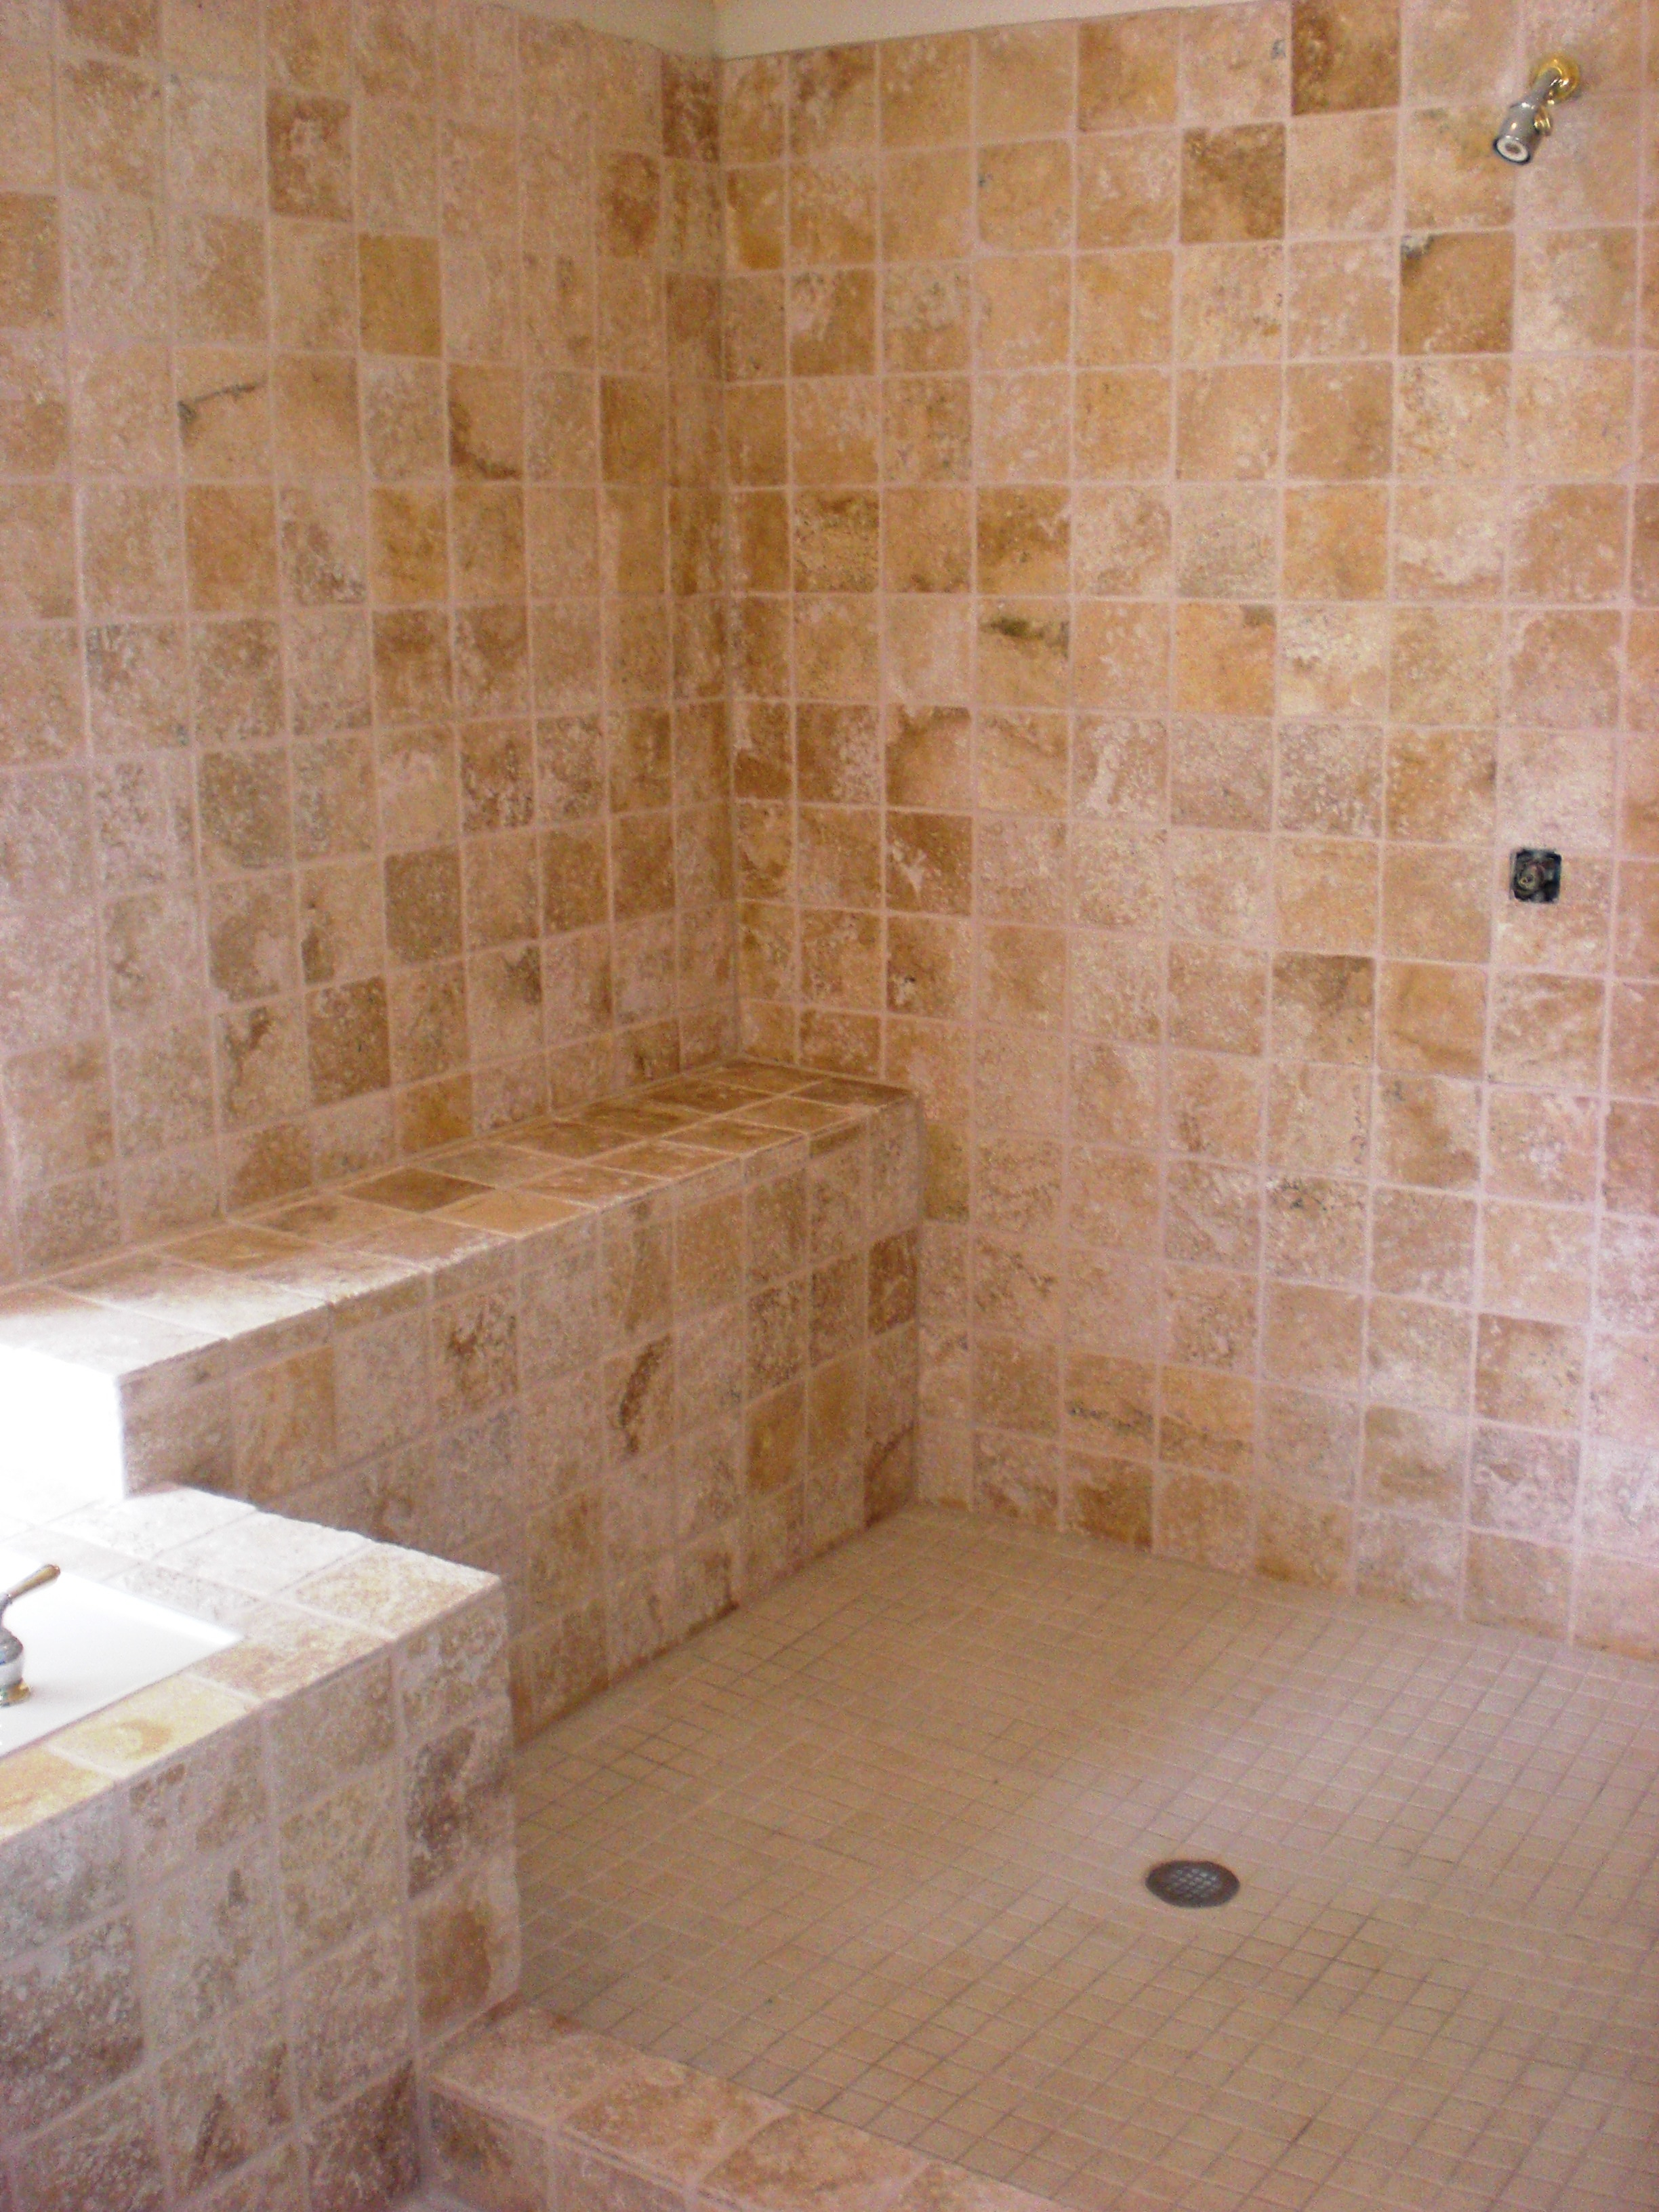 Bathroom floor tile gallery